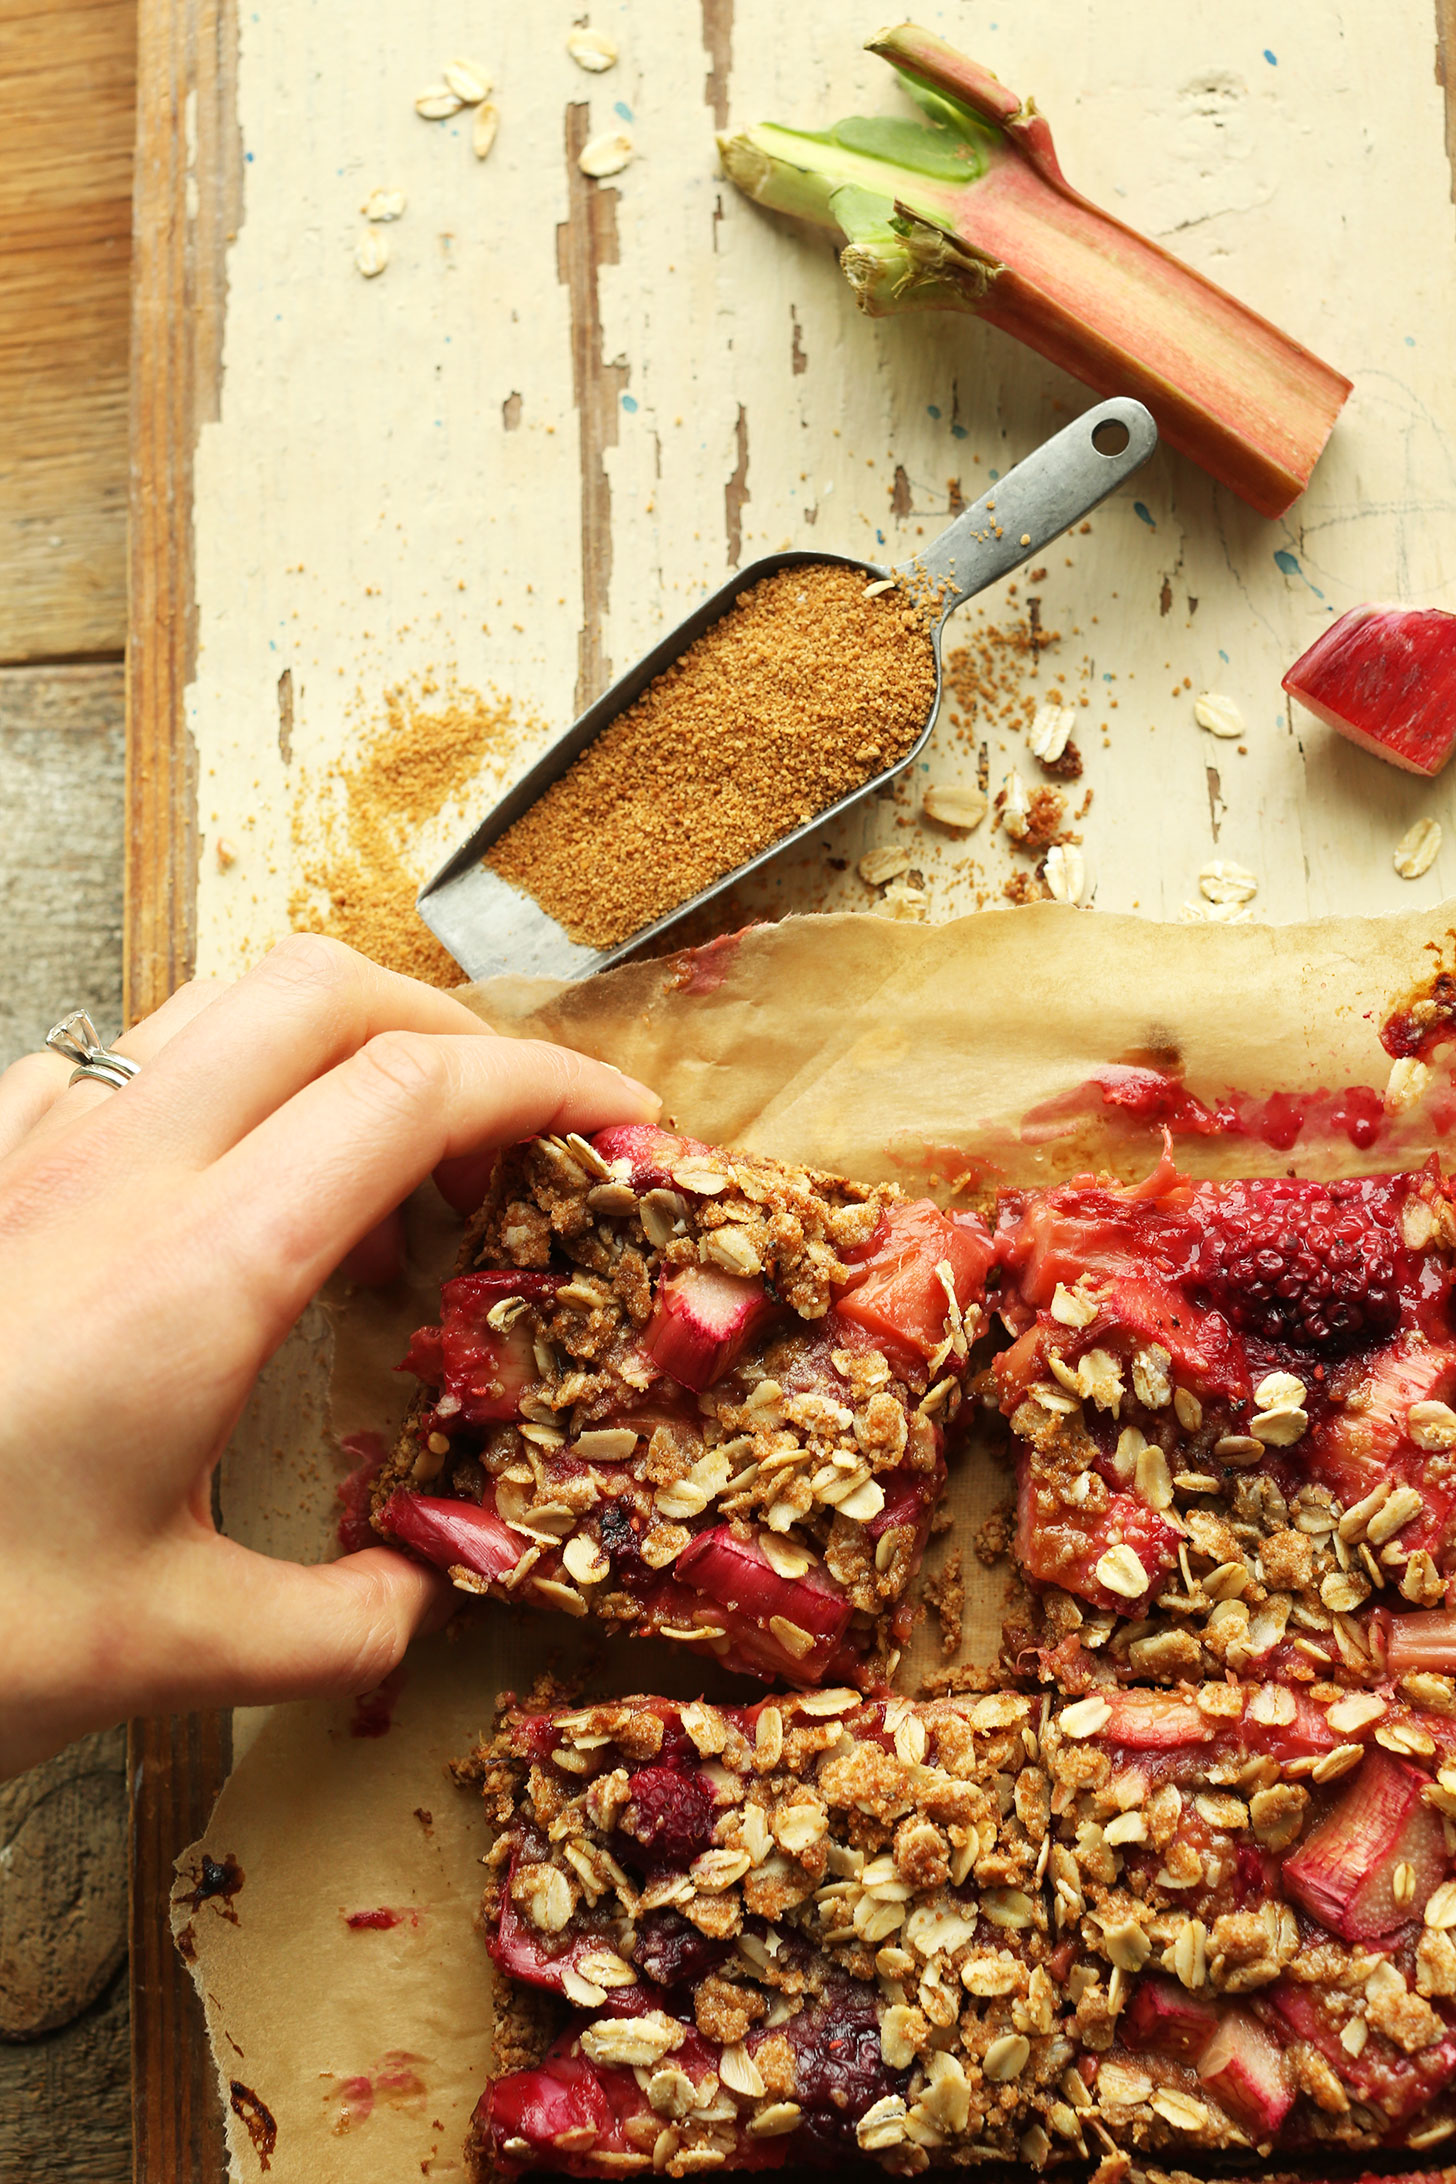 Grabbing a square of our Strawberry Rhubarb Crumble Bars recipe from the batch